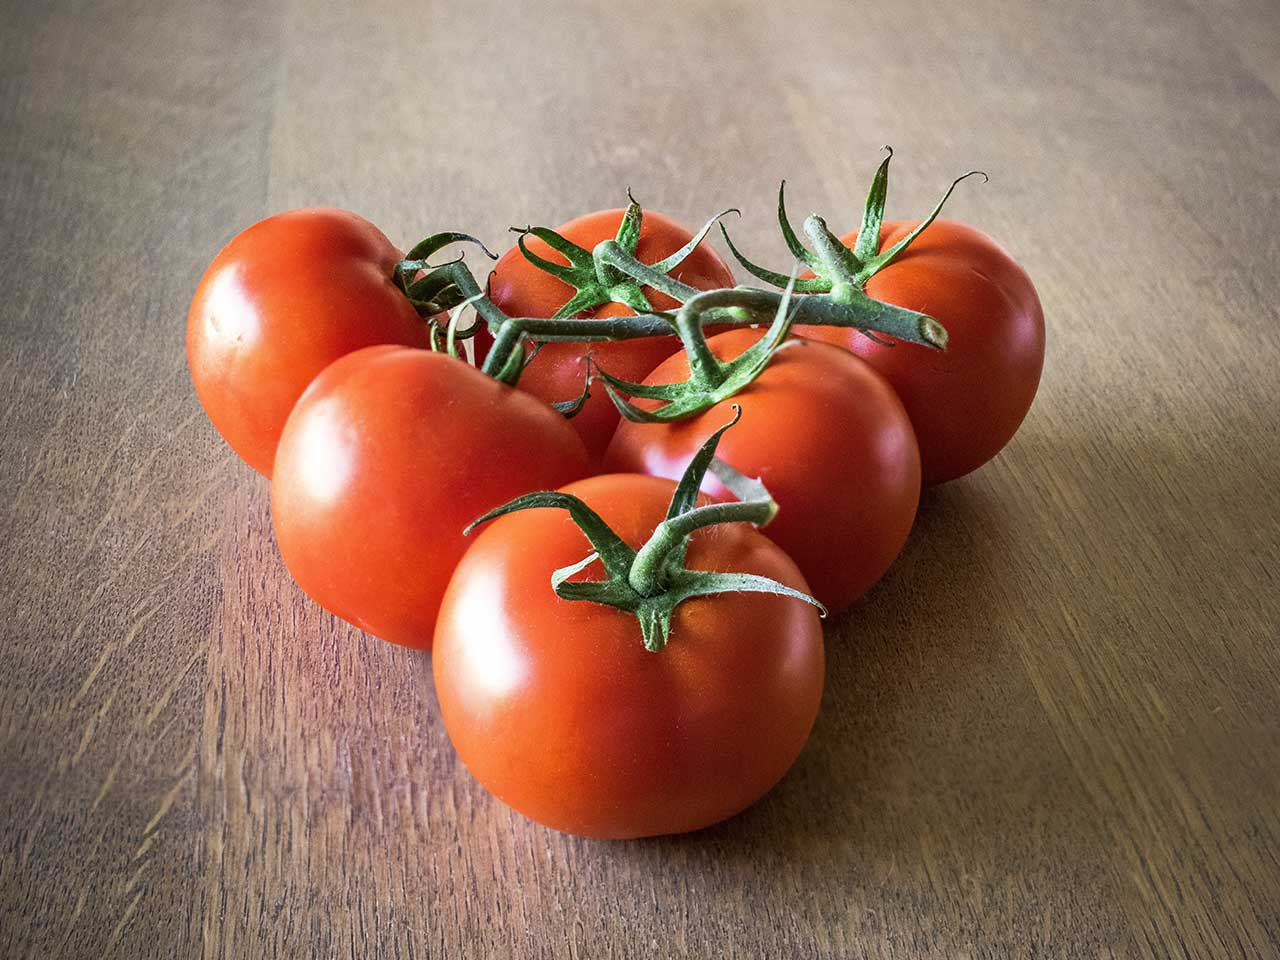 Tomatoes</h3>